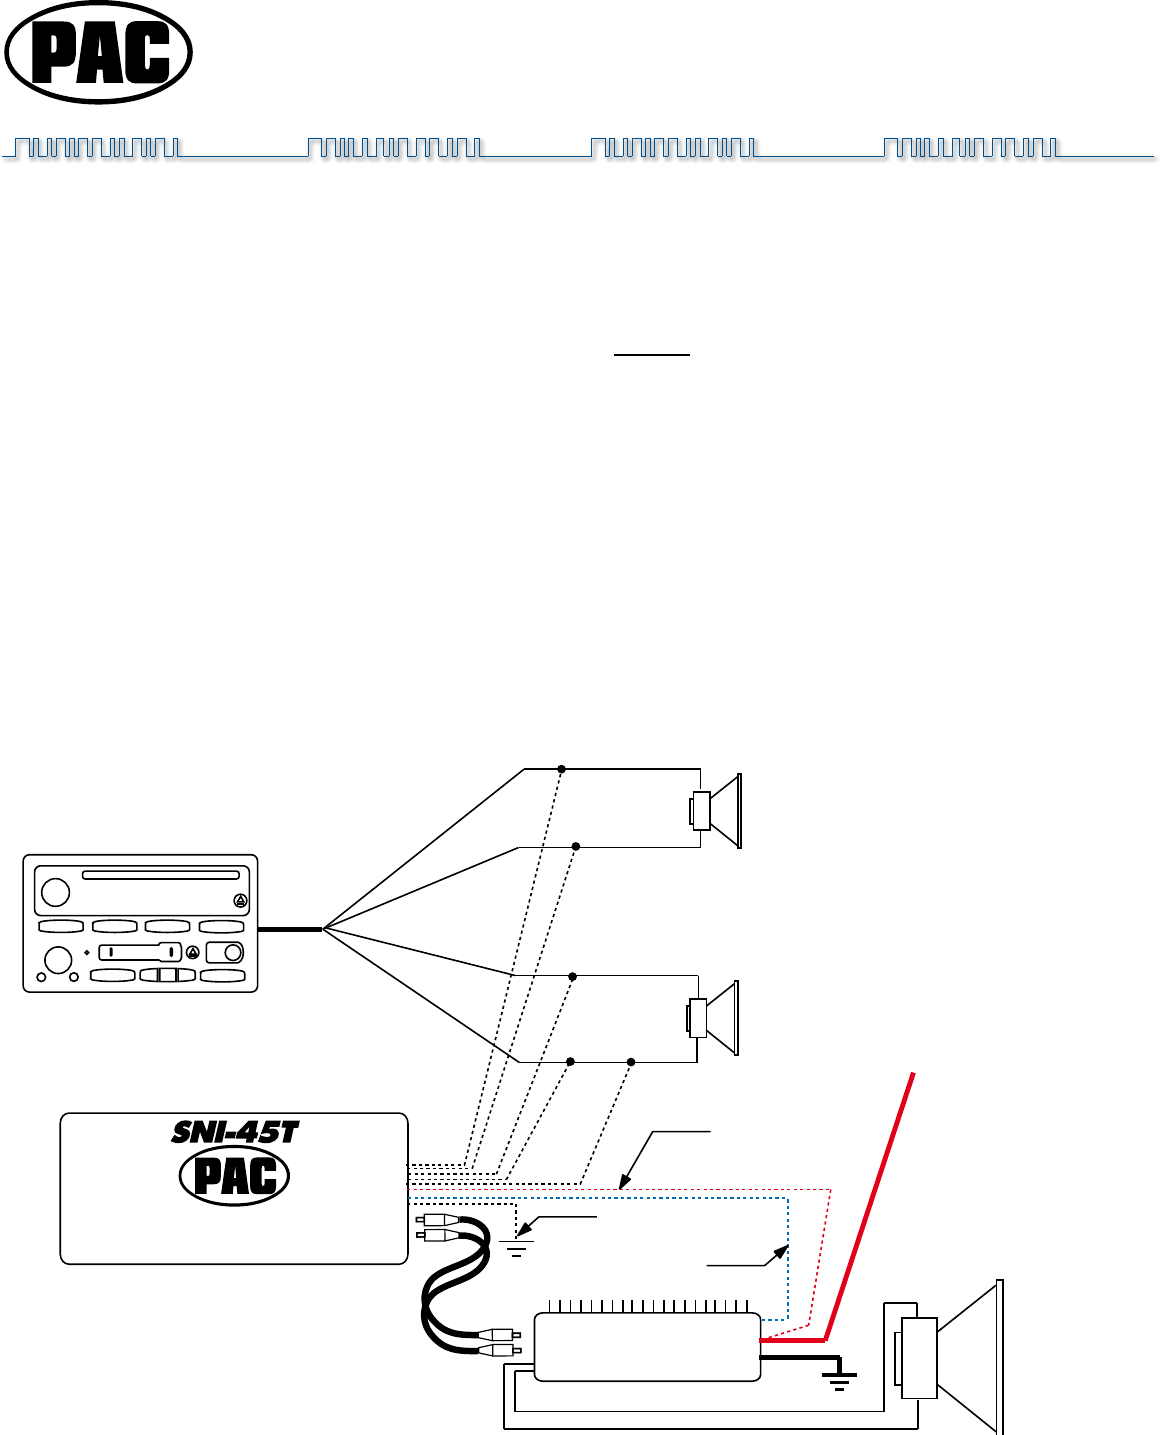 Sni 50a Wiring Diagram additionally How To Wire A Line Out Converter Diagram together with Pac Line Out Converter Wiring Diagram moreover Peak Backup Camera Wiring Diagram further Pac Sni 15 Wiring Diagram. on scosche output converter wiring diagram